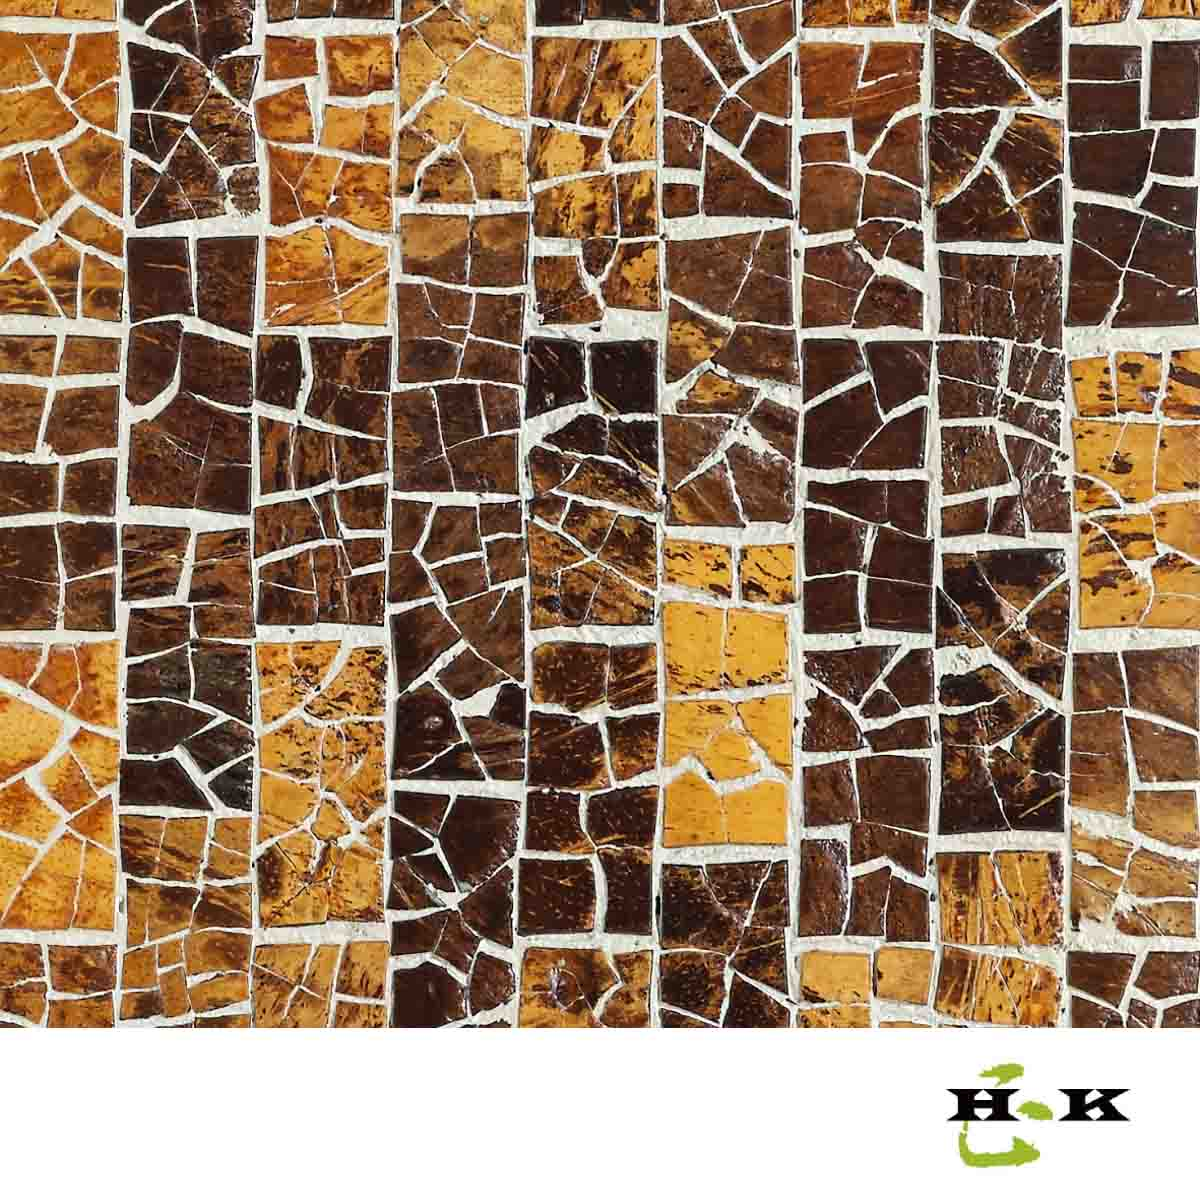 Architectural decorative coconut shell tiles